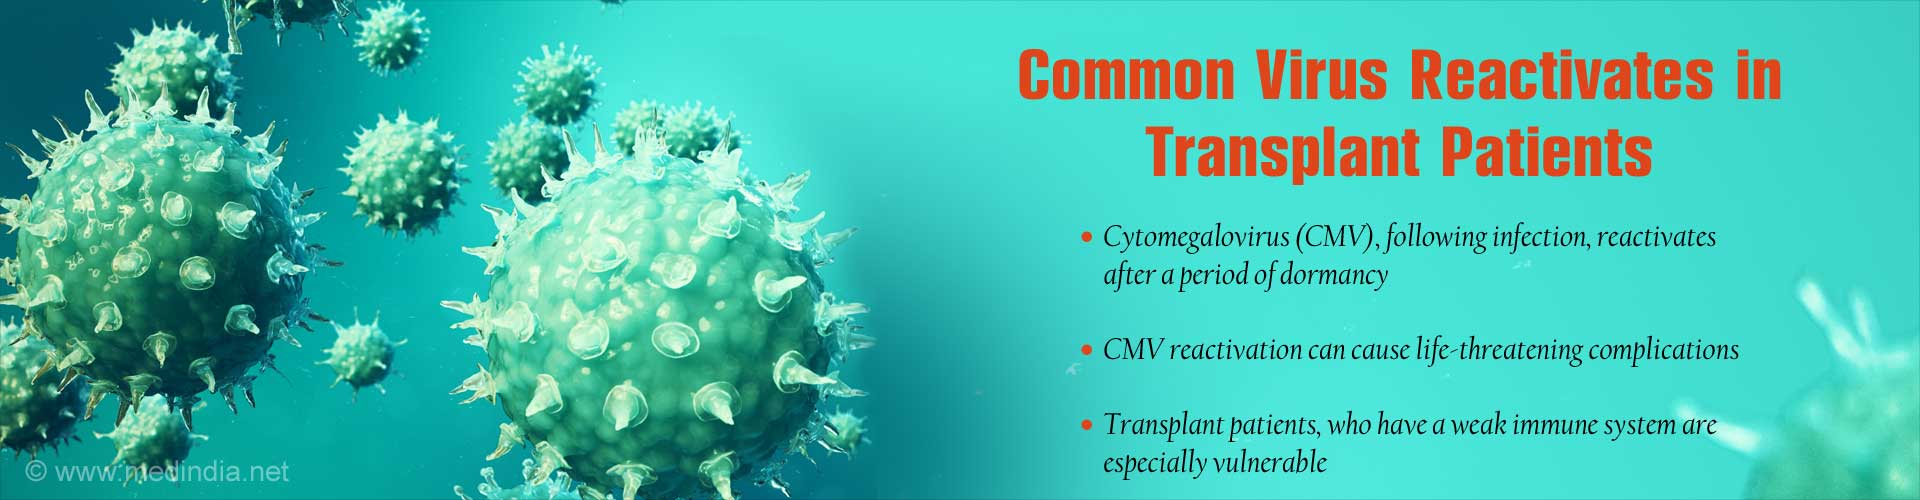 Common virus reactivates in transplant patients. Cytomegalovirus (CMV), following infection, reactivates after a period of dormancy. CMV reactivation can cause life-threatening complications. Transplant patients, who have a weak immune system are especially vulnerable.